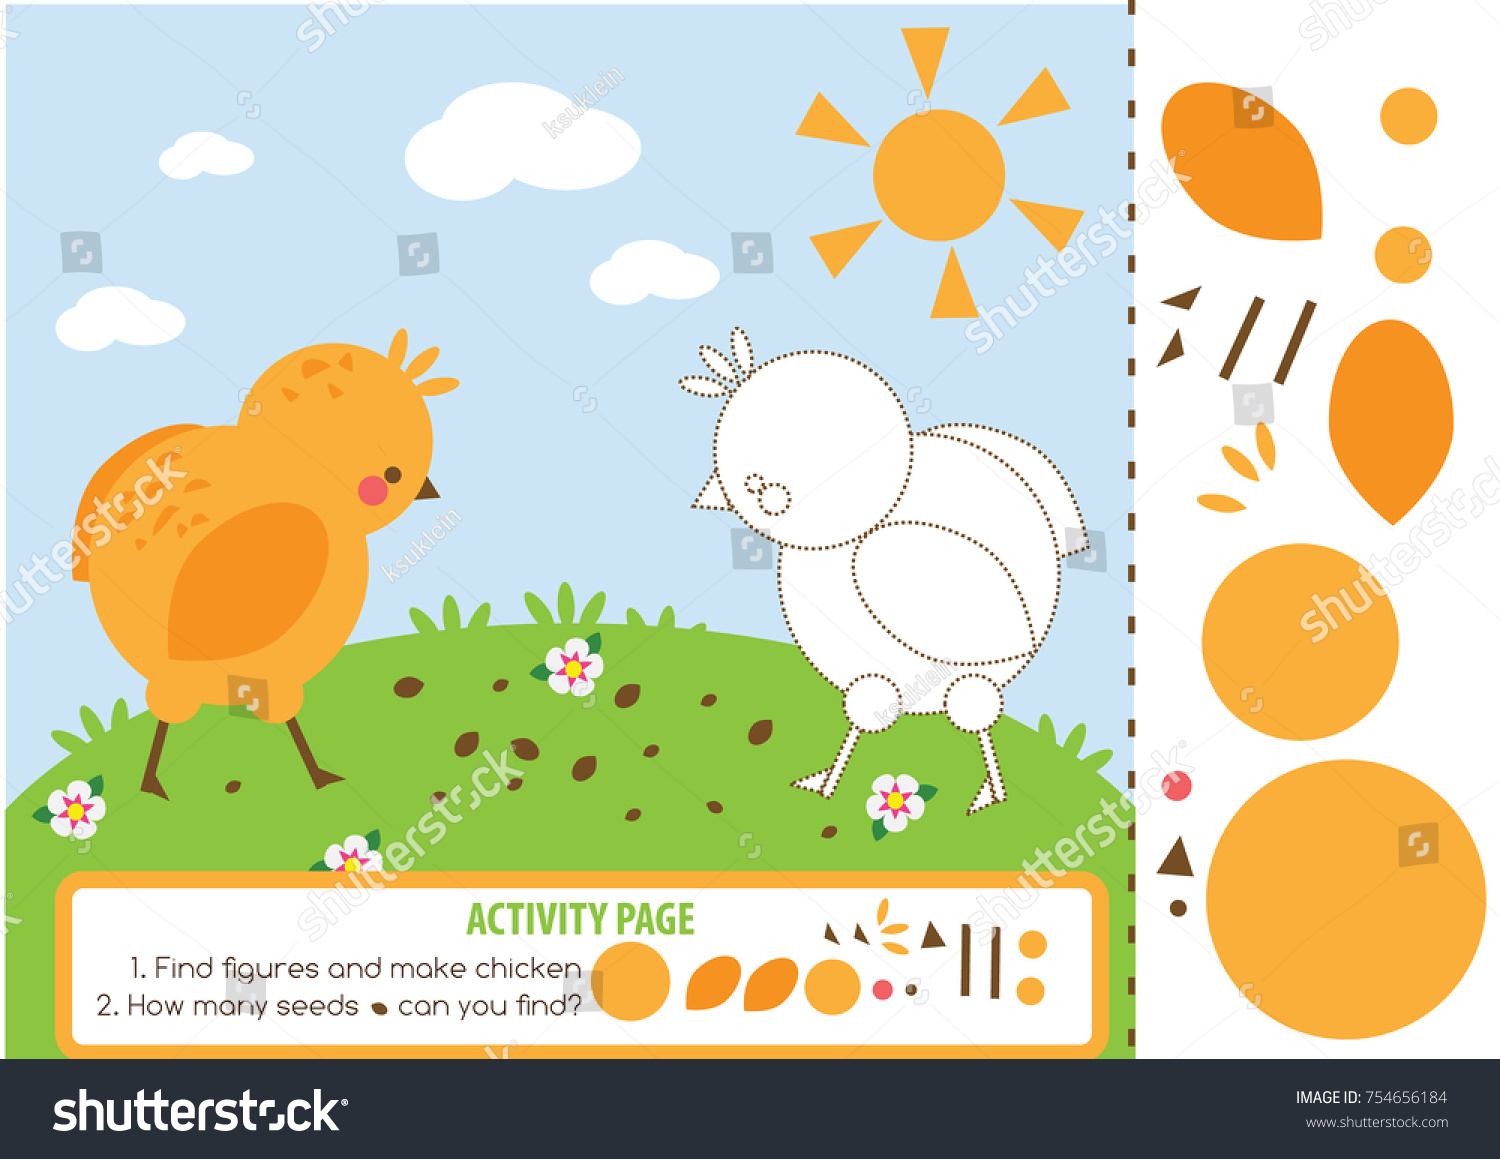 Activity Page Kids Chicken Educational Children Stock Vector ...